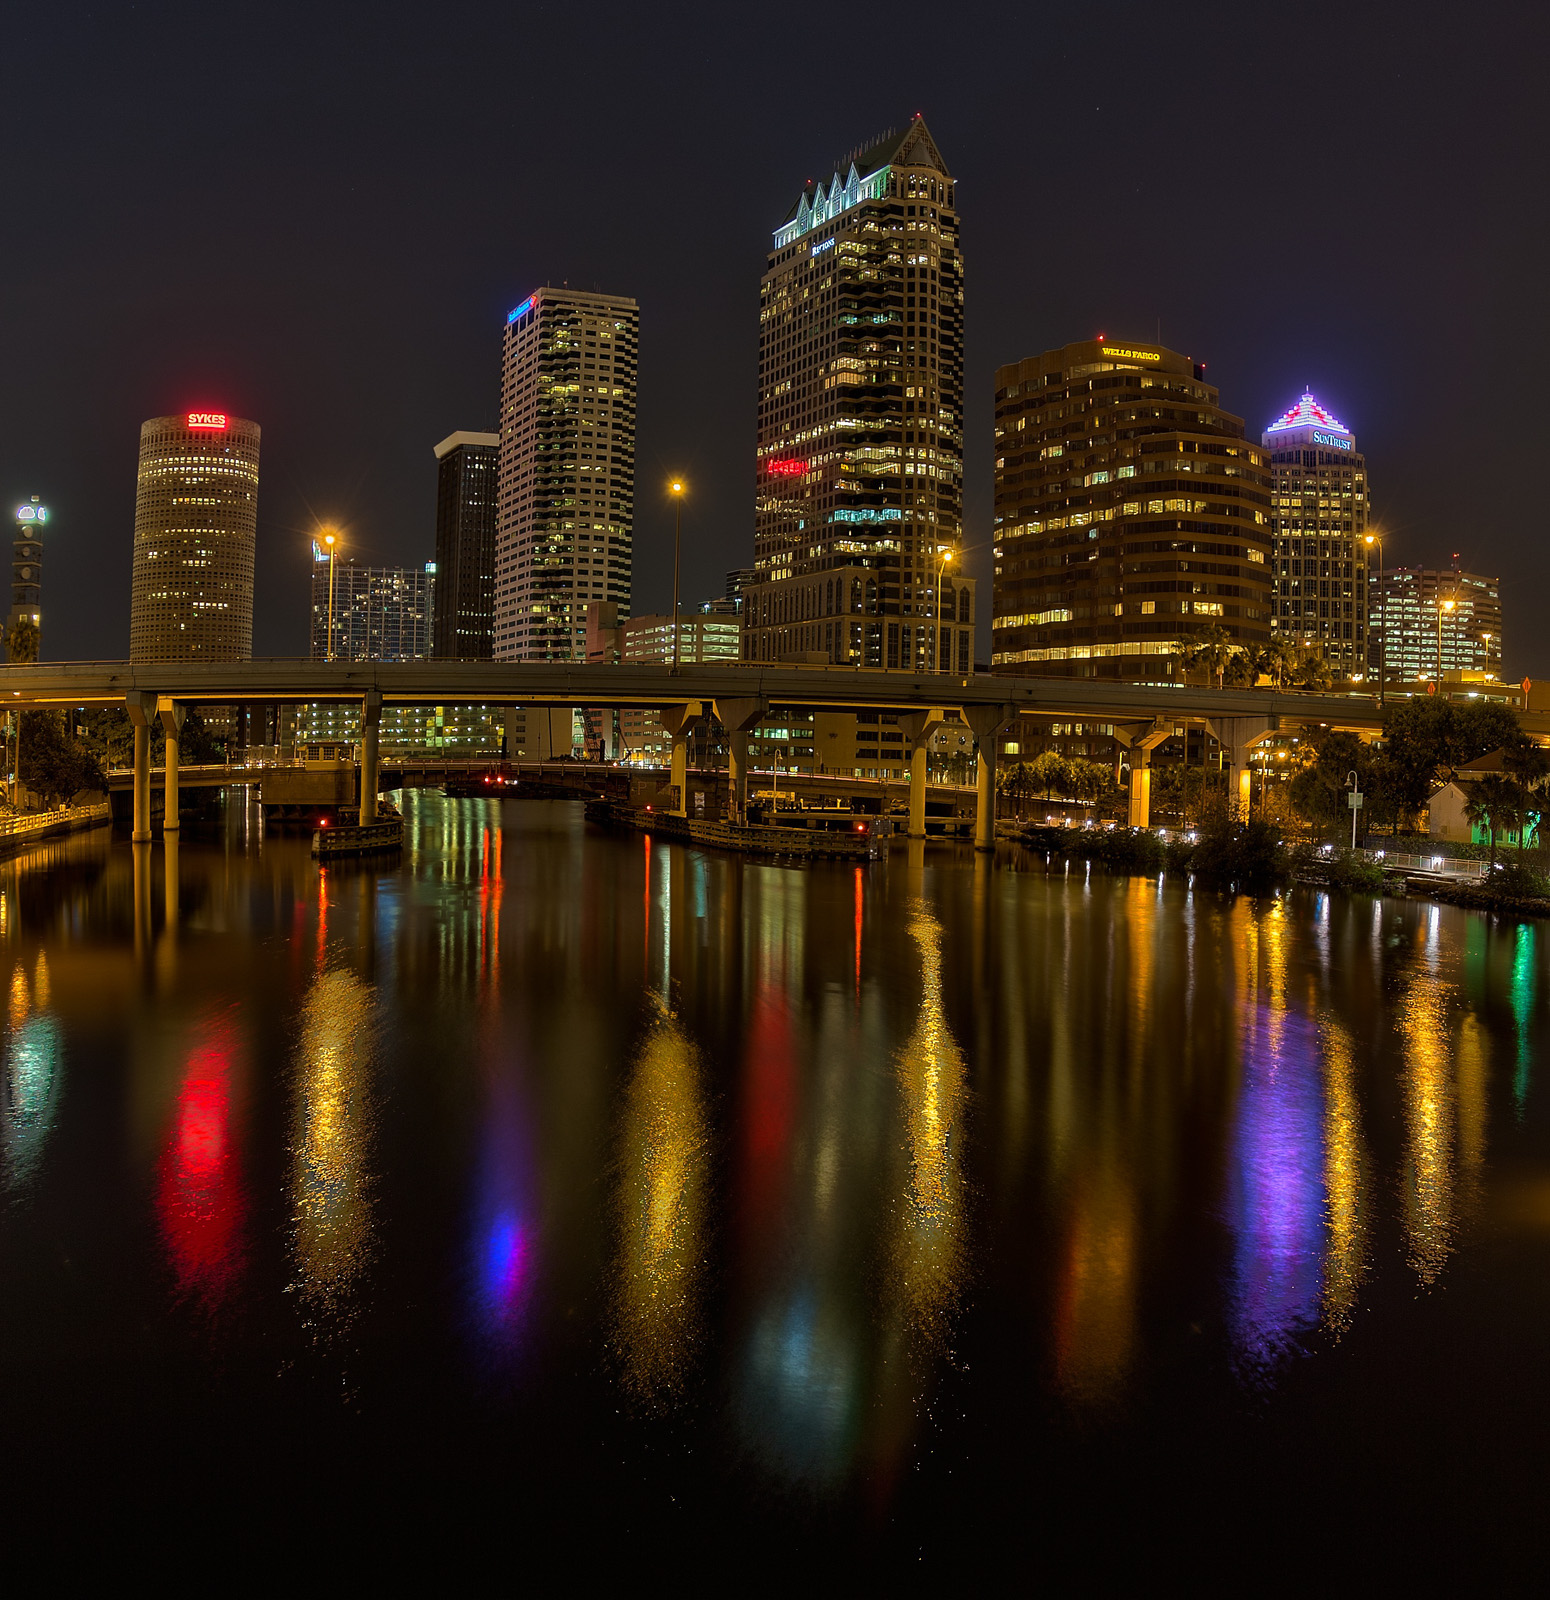 Platt Street Bridge at Night